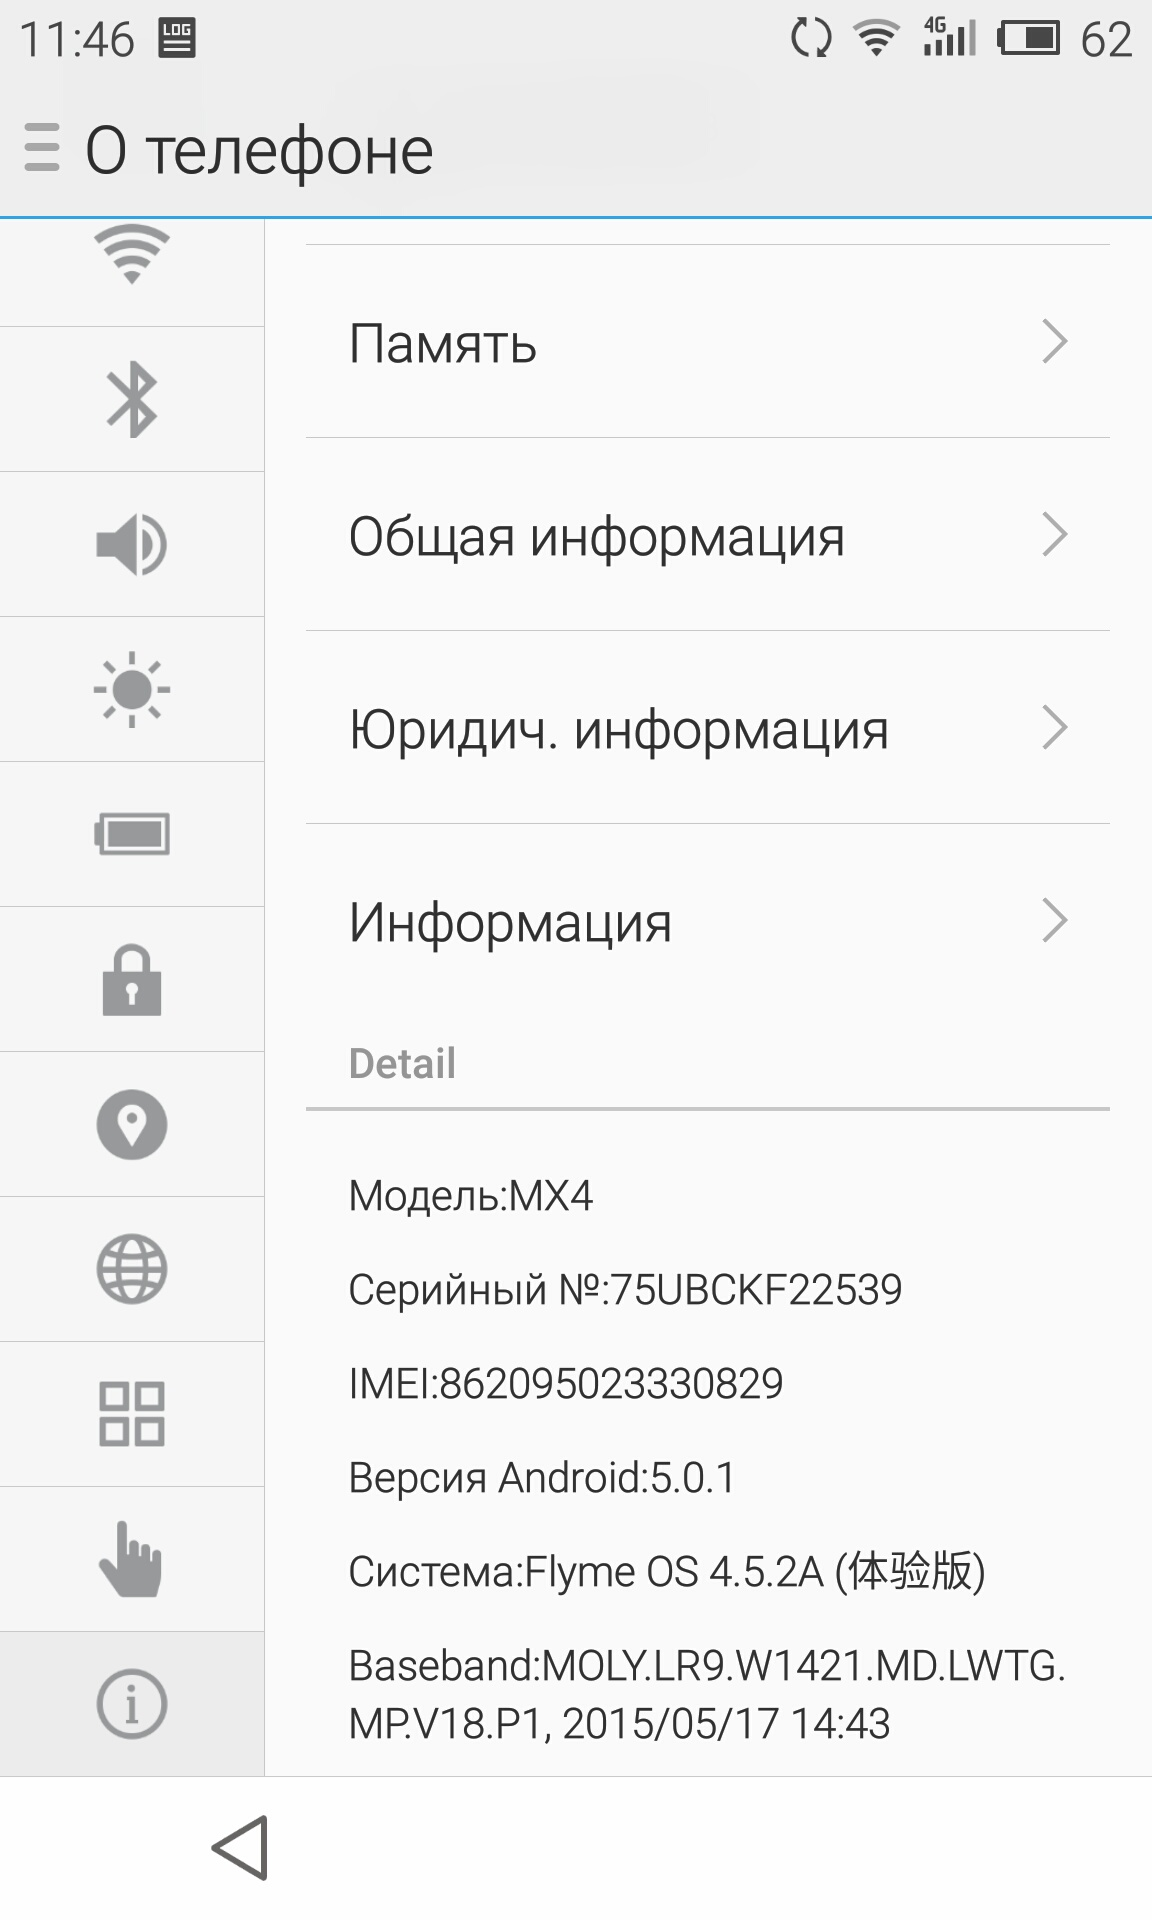 Android 5 0 lollipop c оболочкой flyme